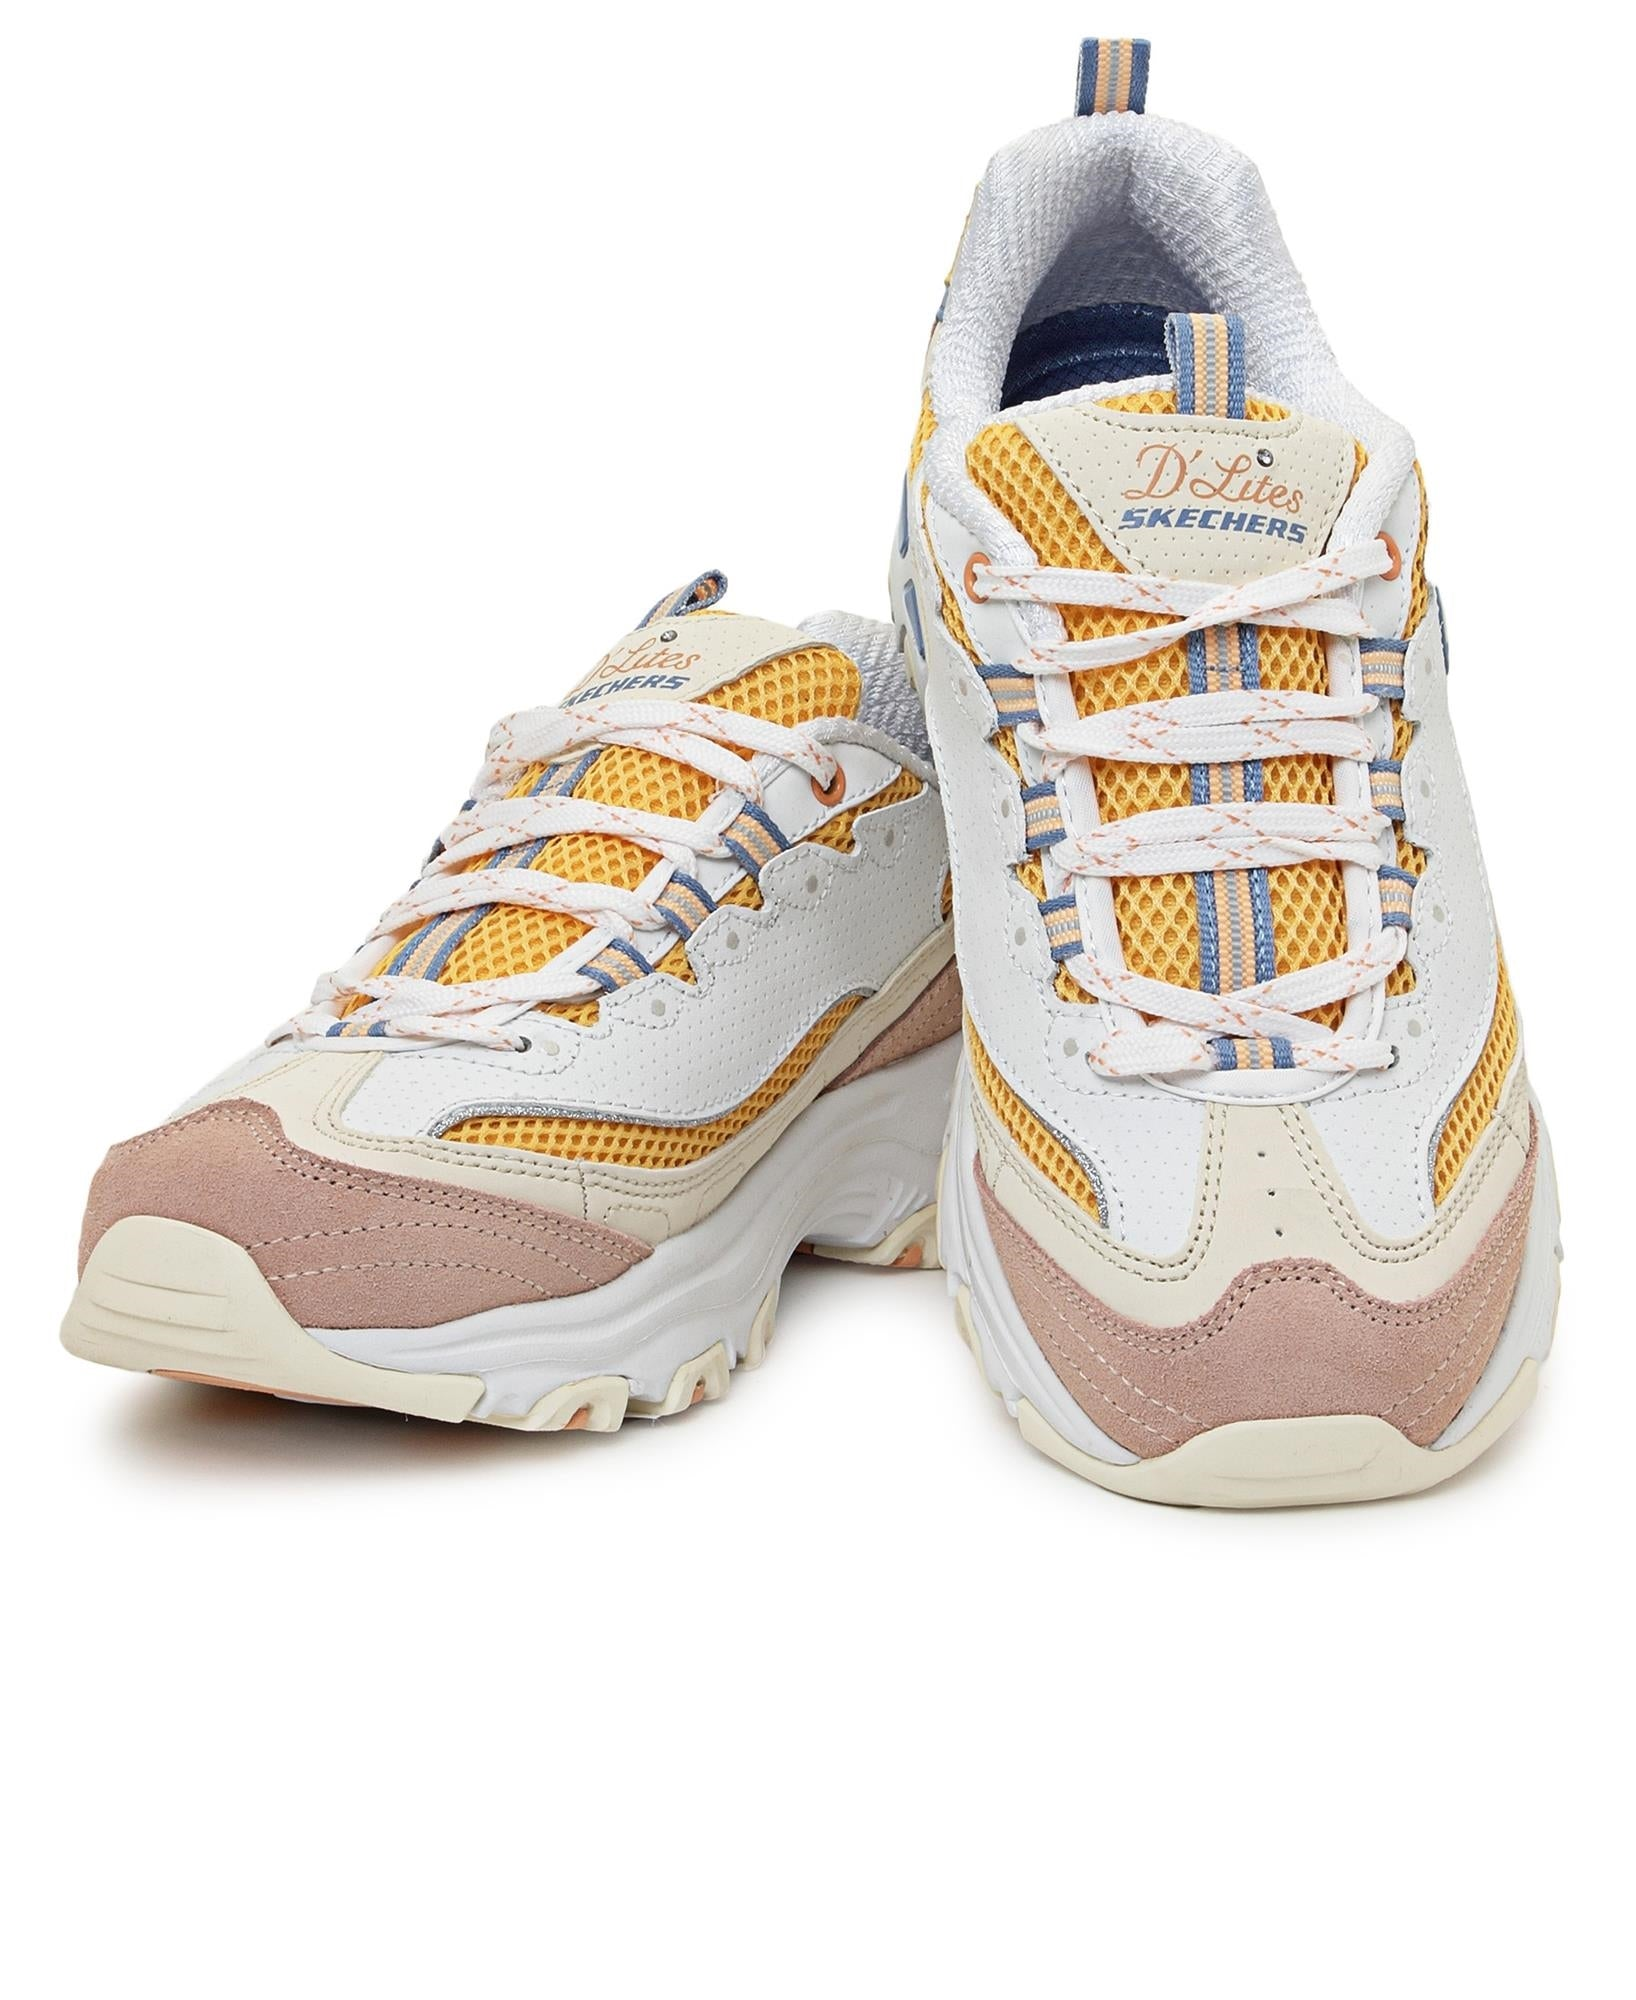 skechers online south africa